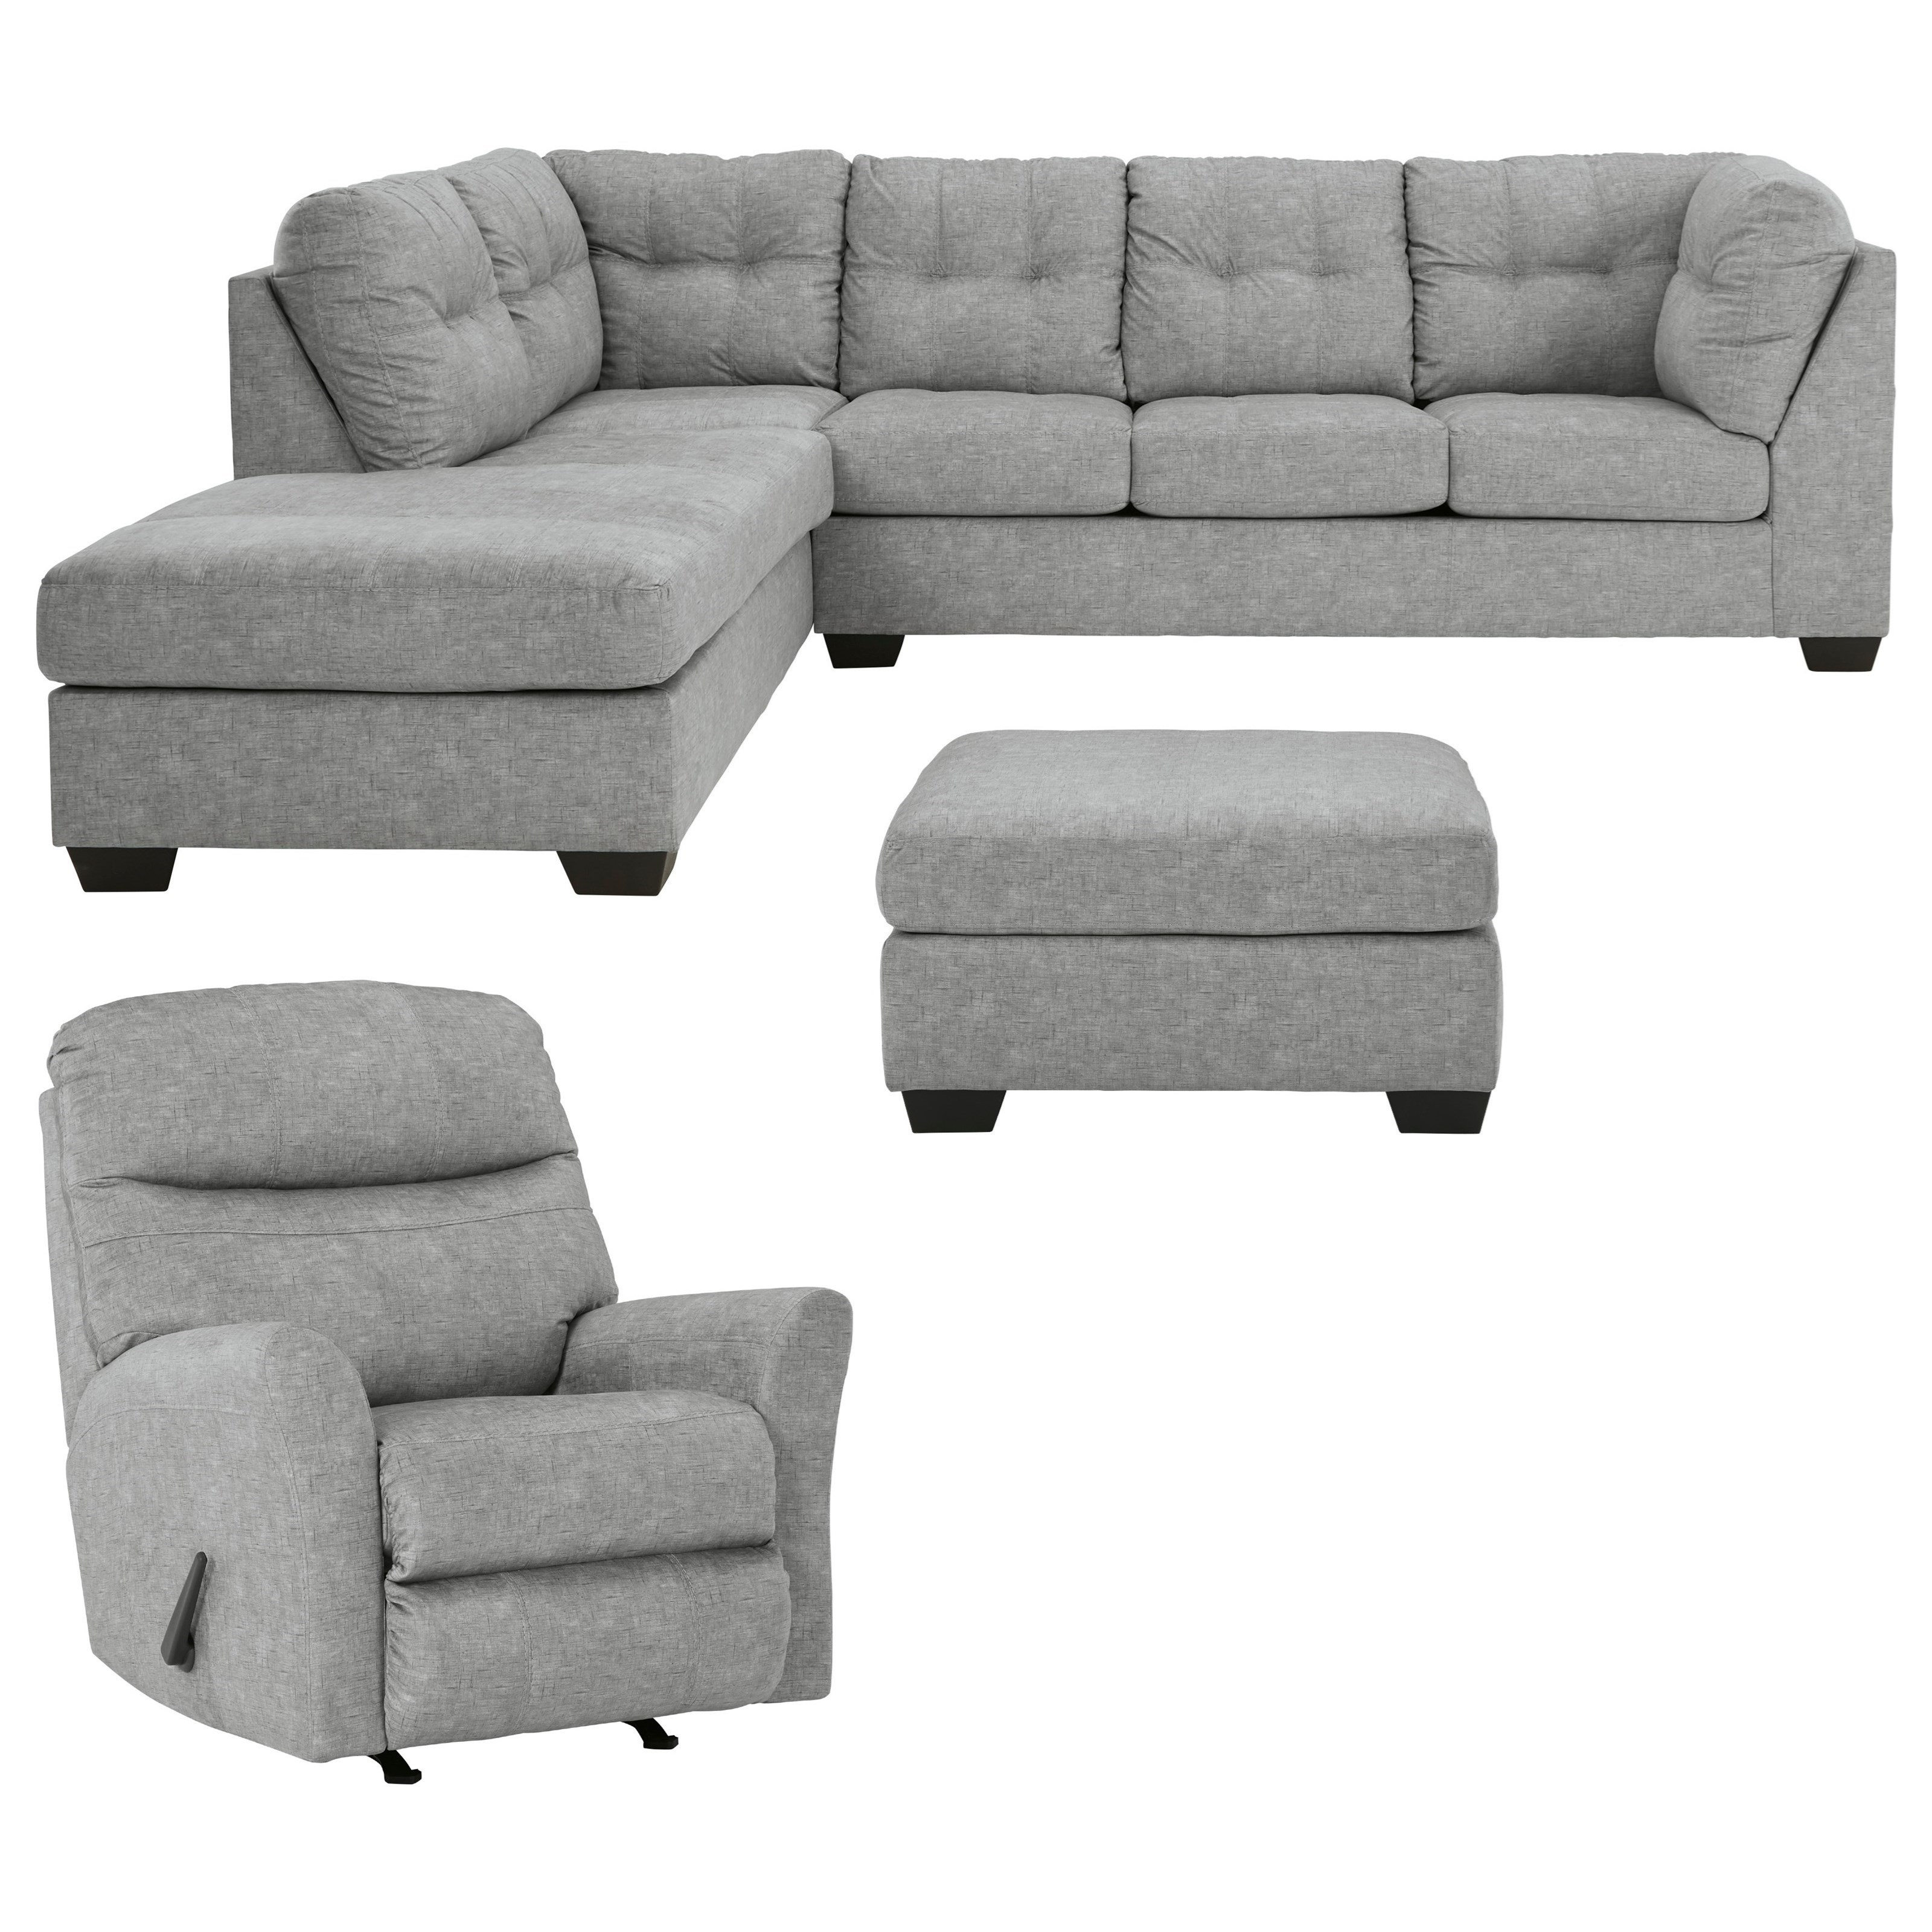 Falkirk Living Room Group by Benchcraft at Rooms and Rest